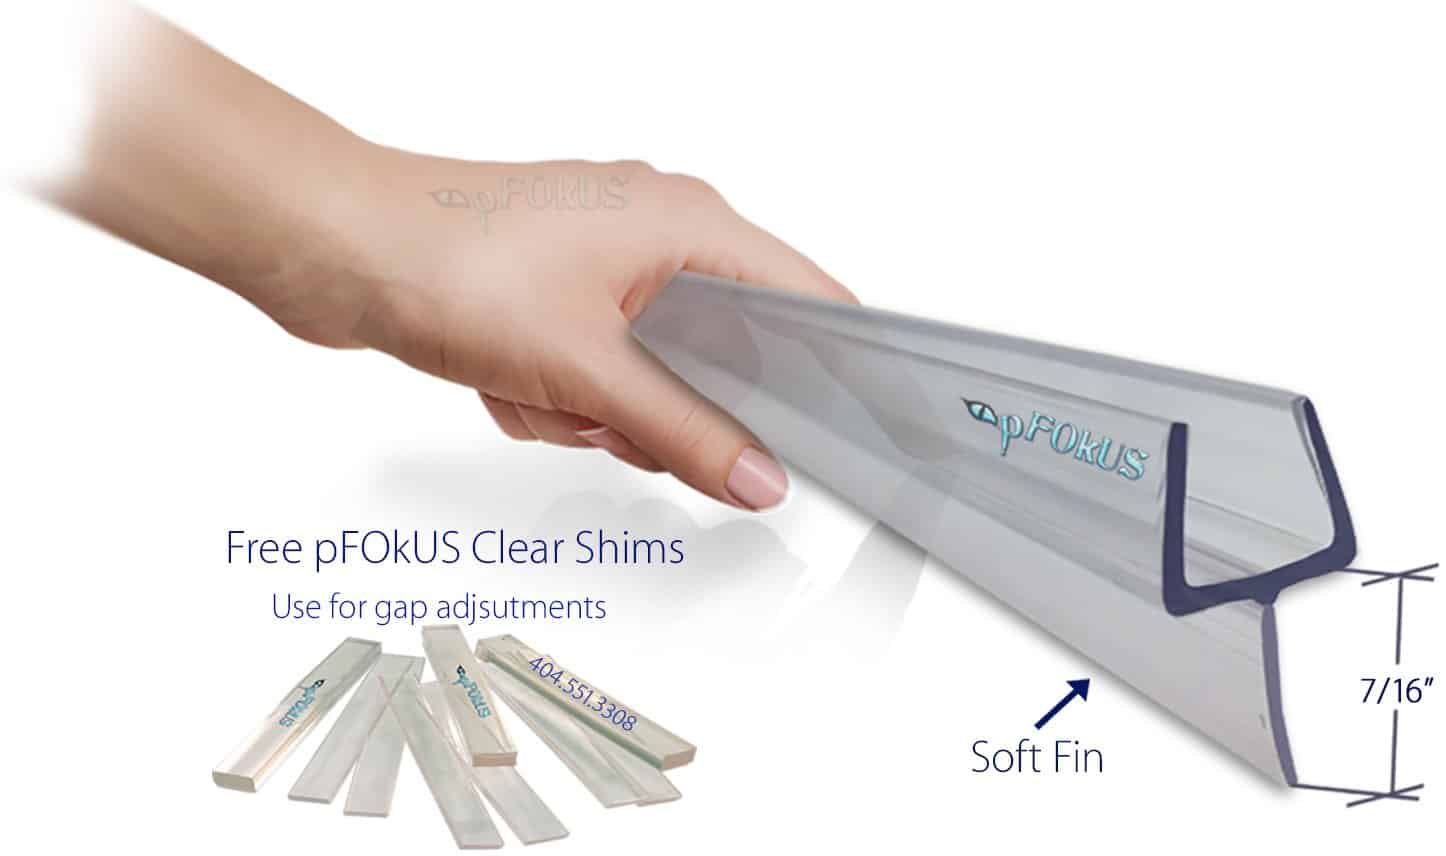 ds932225-free-pfokus-clear-shims